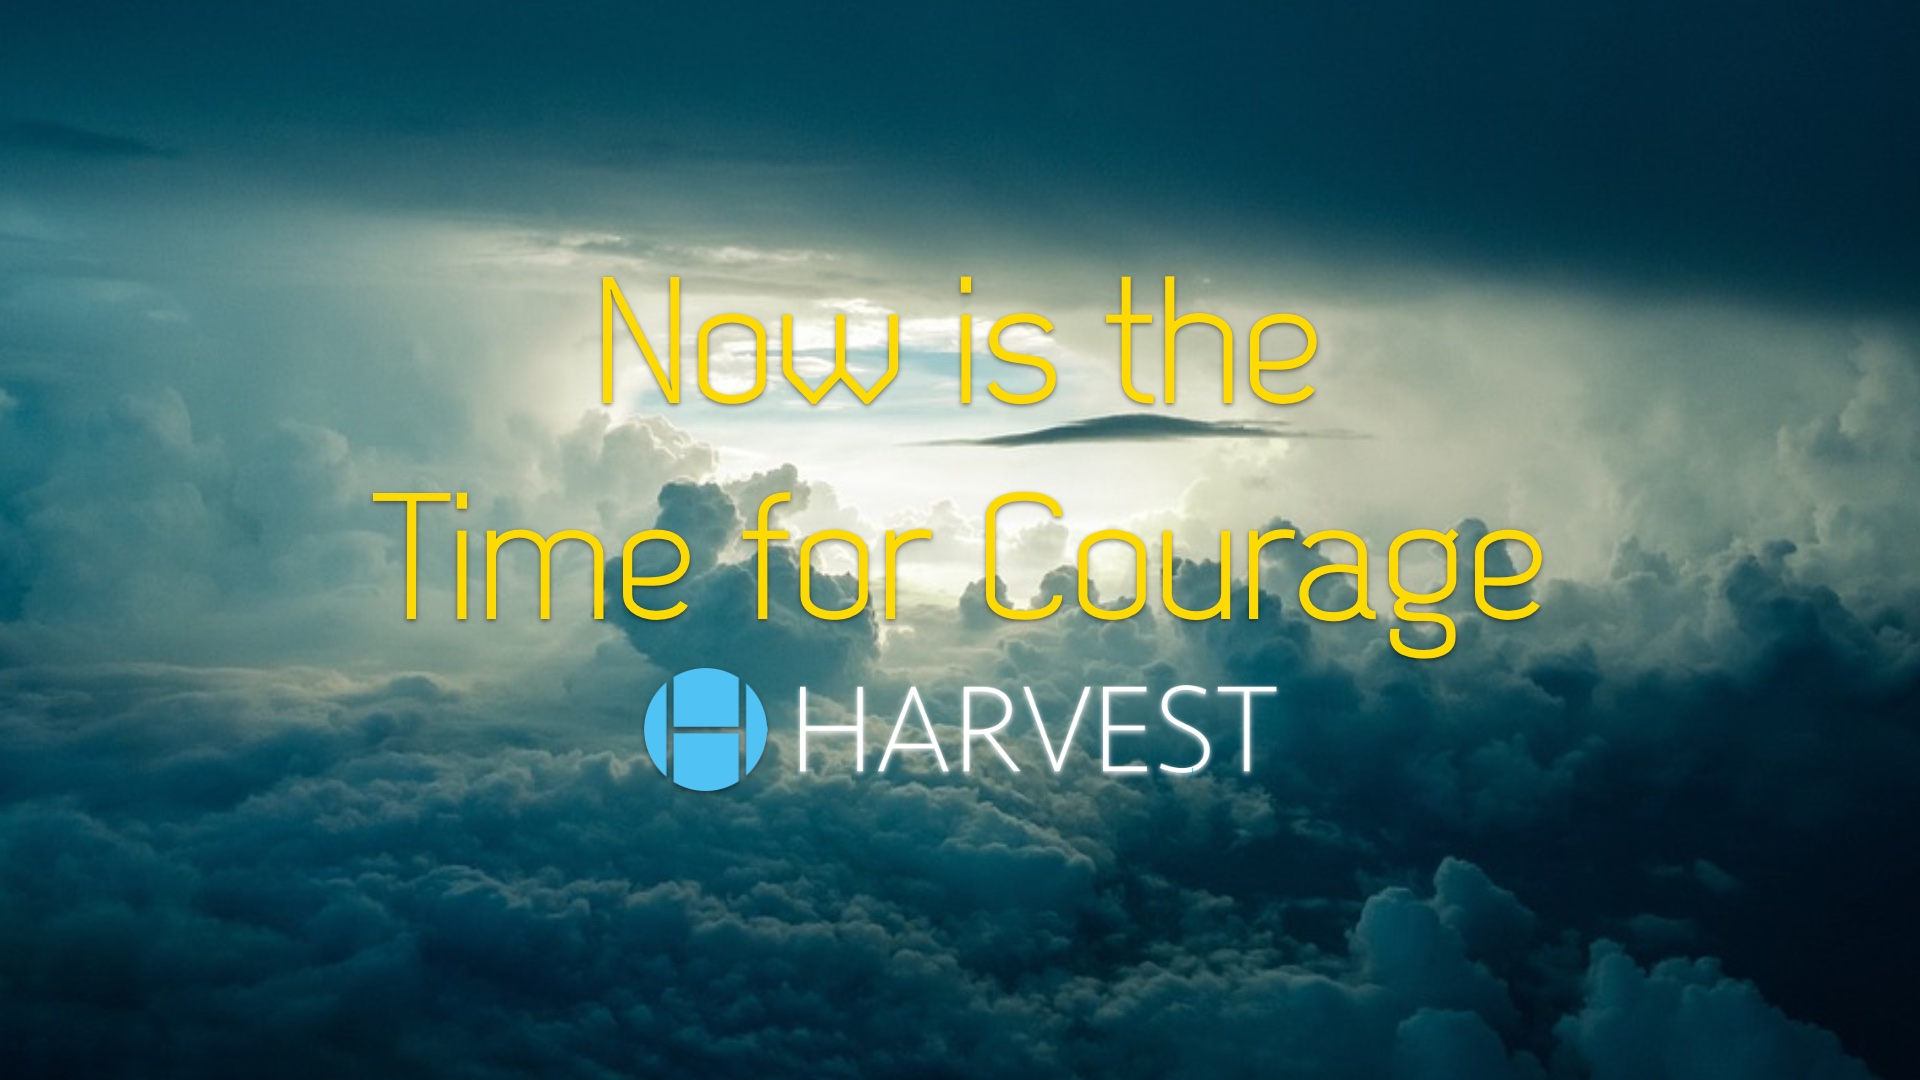 Now is the Time for Courage